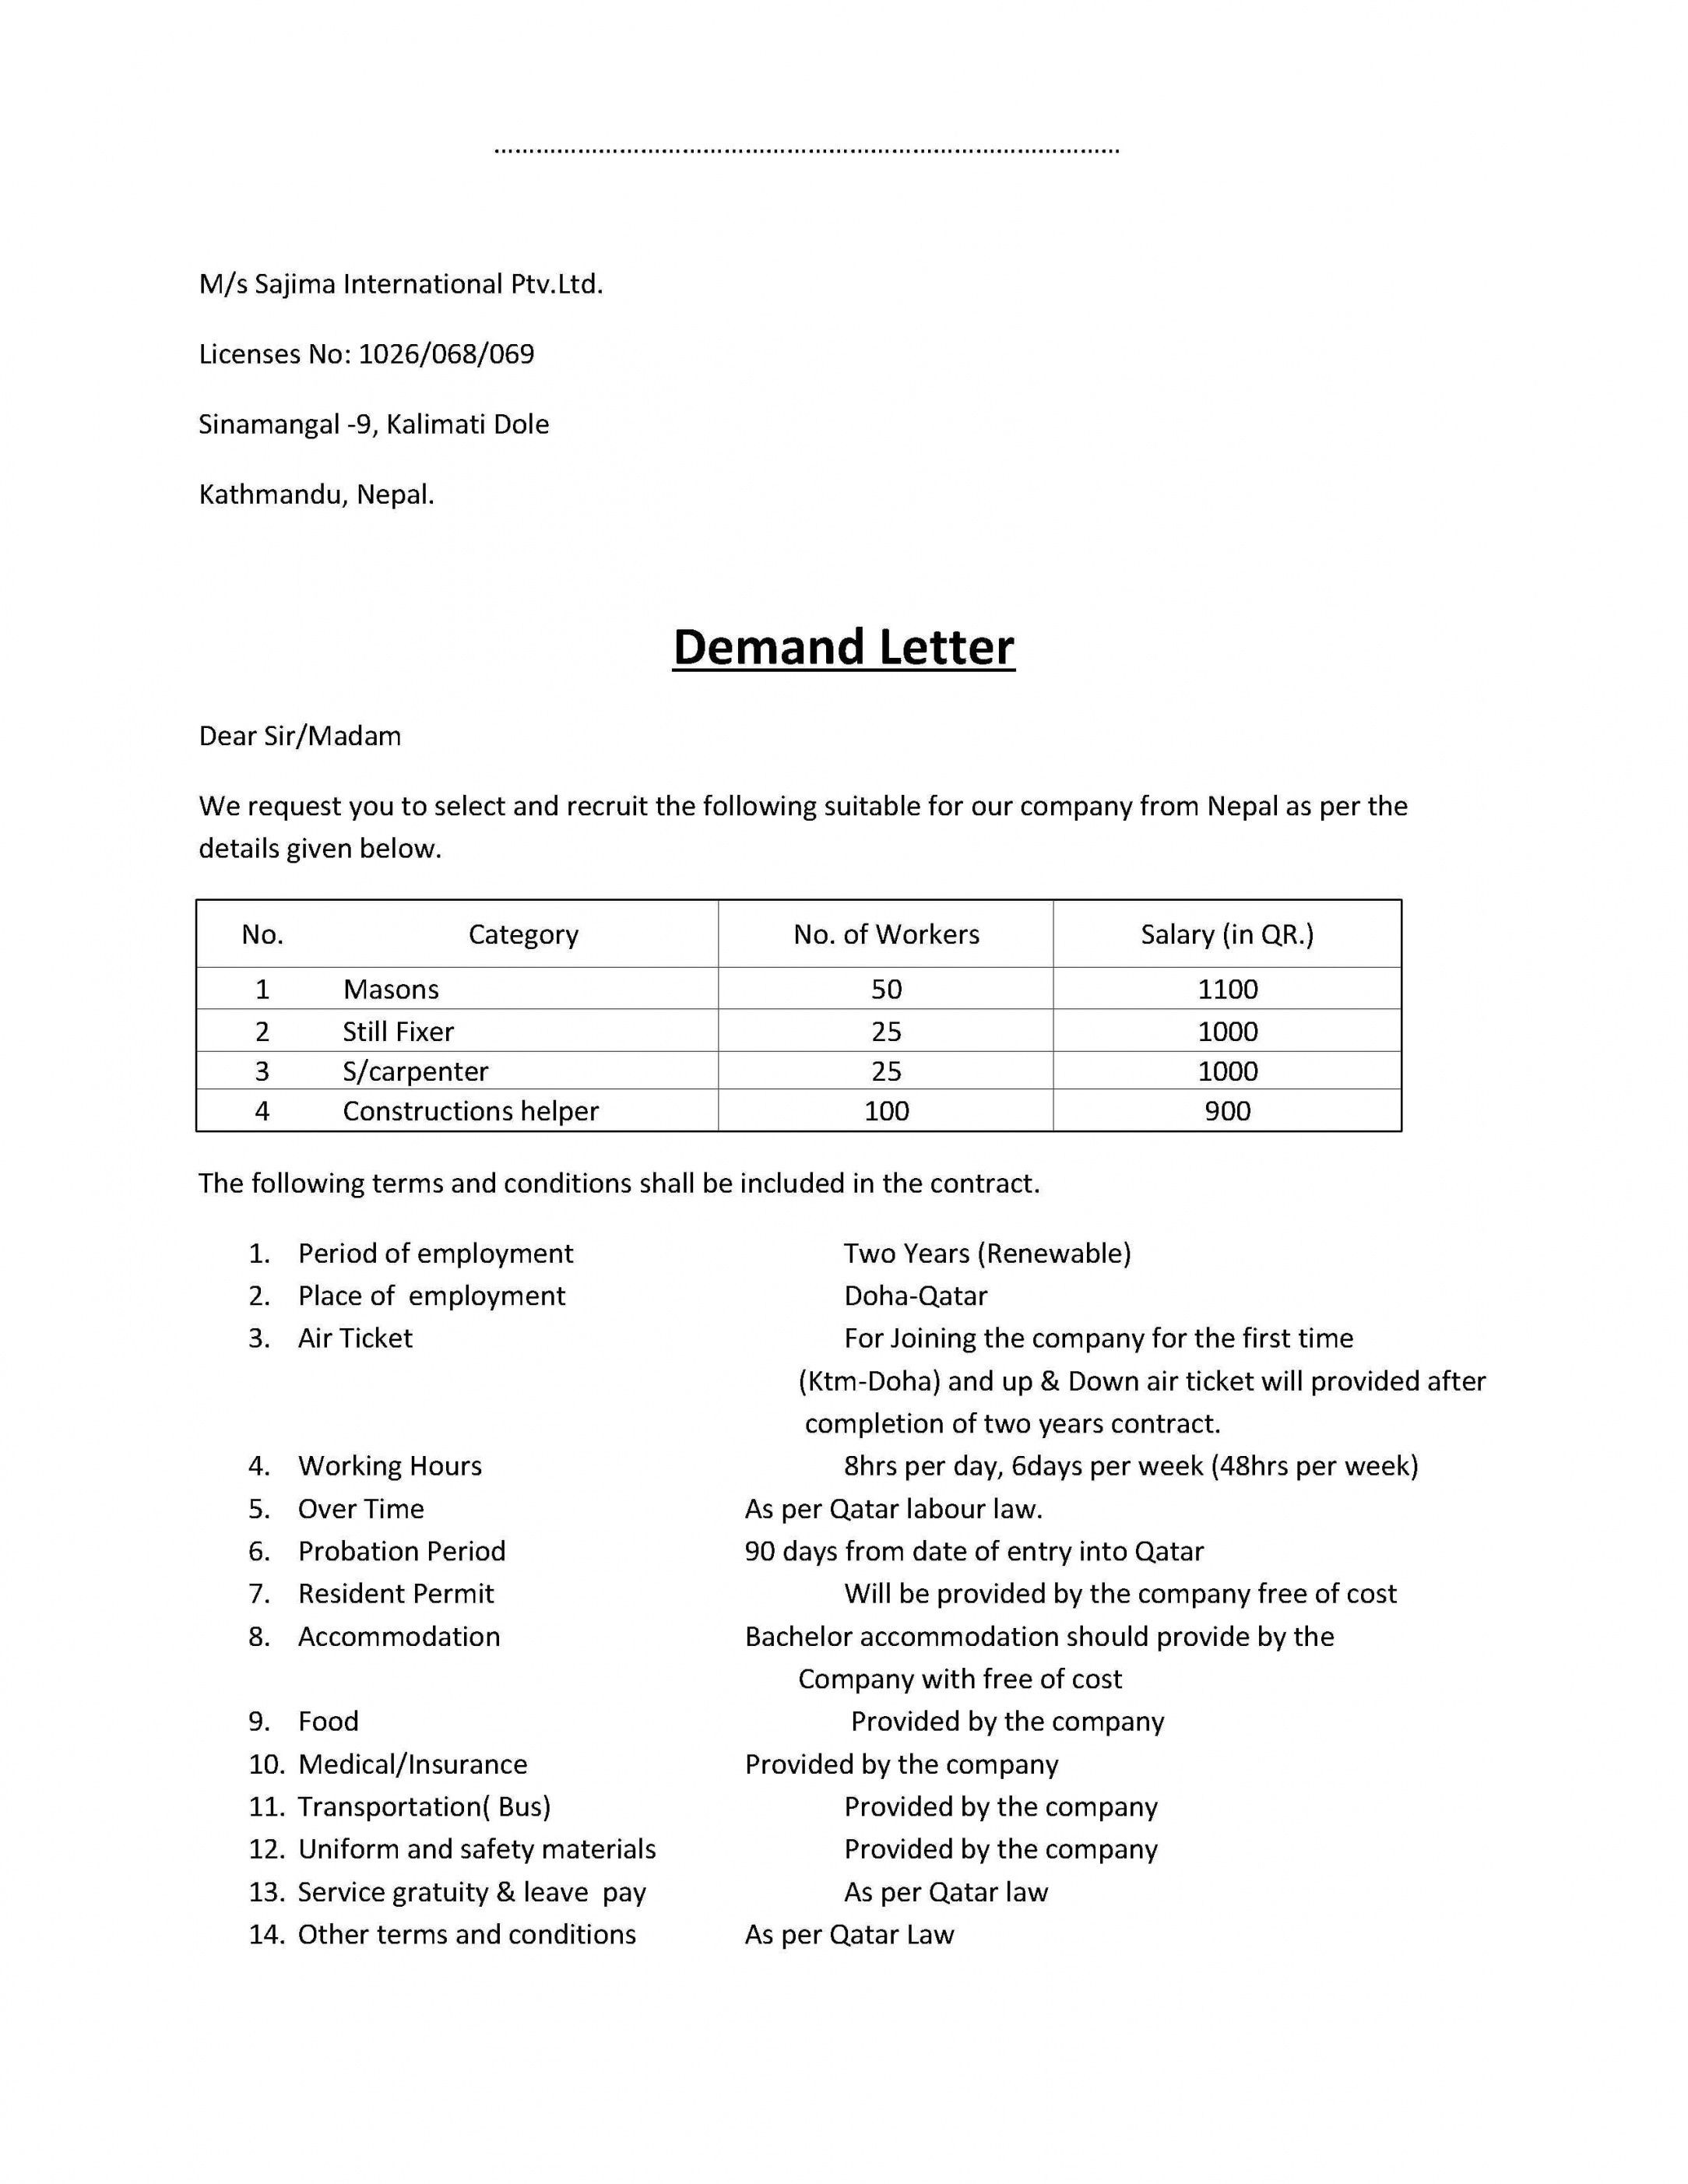 I Owe You Template Elegant Demand Letter Sample Gplusnick Subrogation Demand Letter